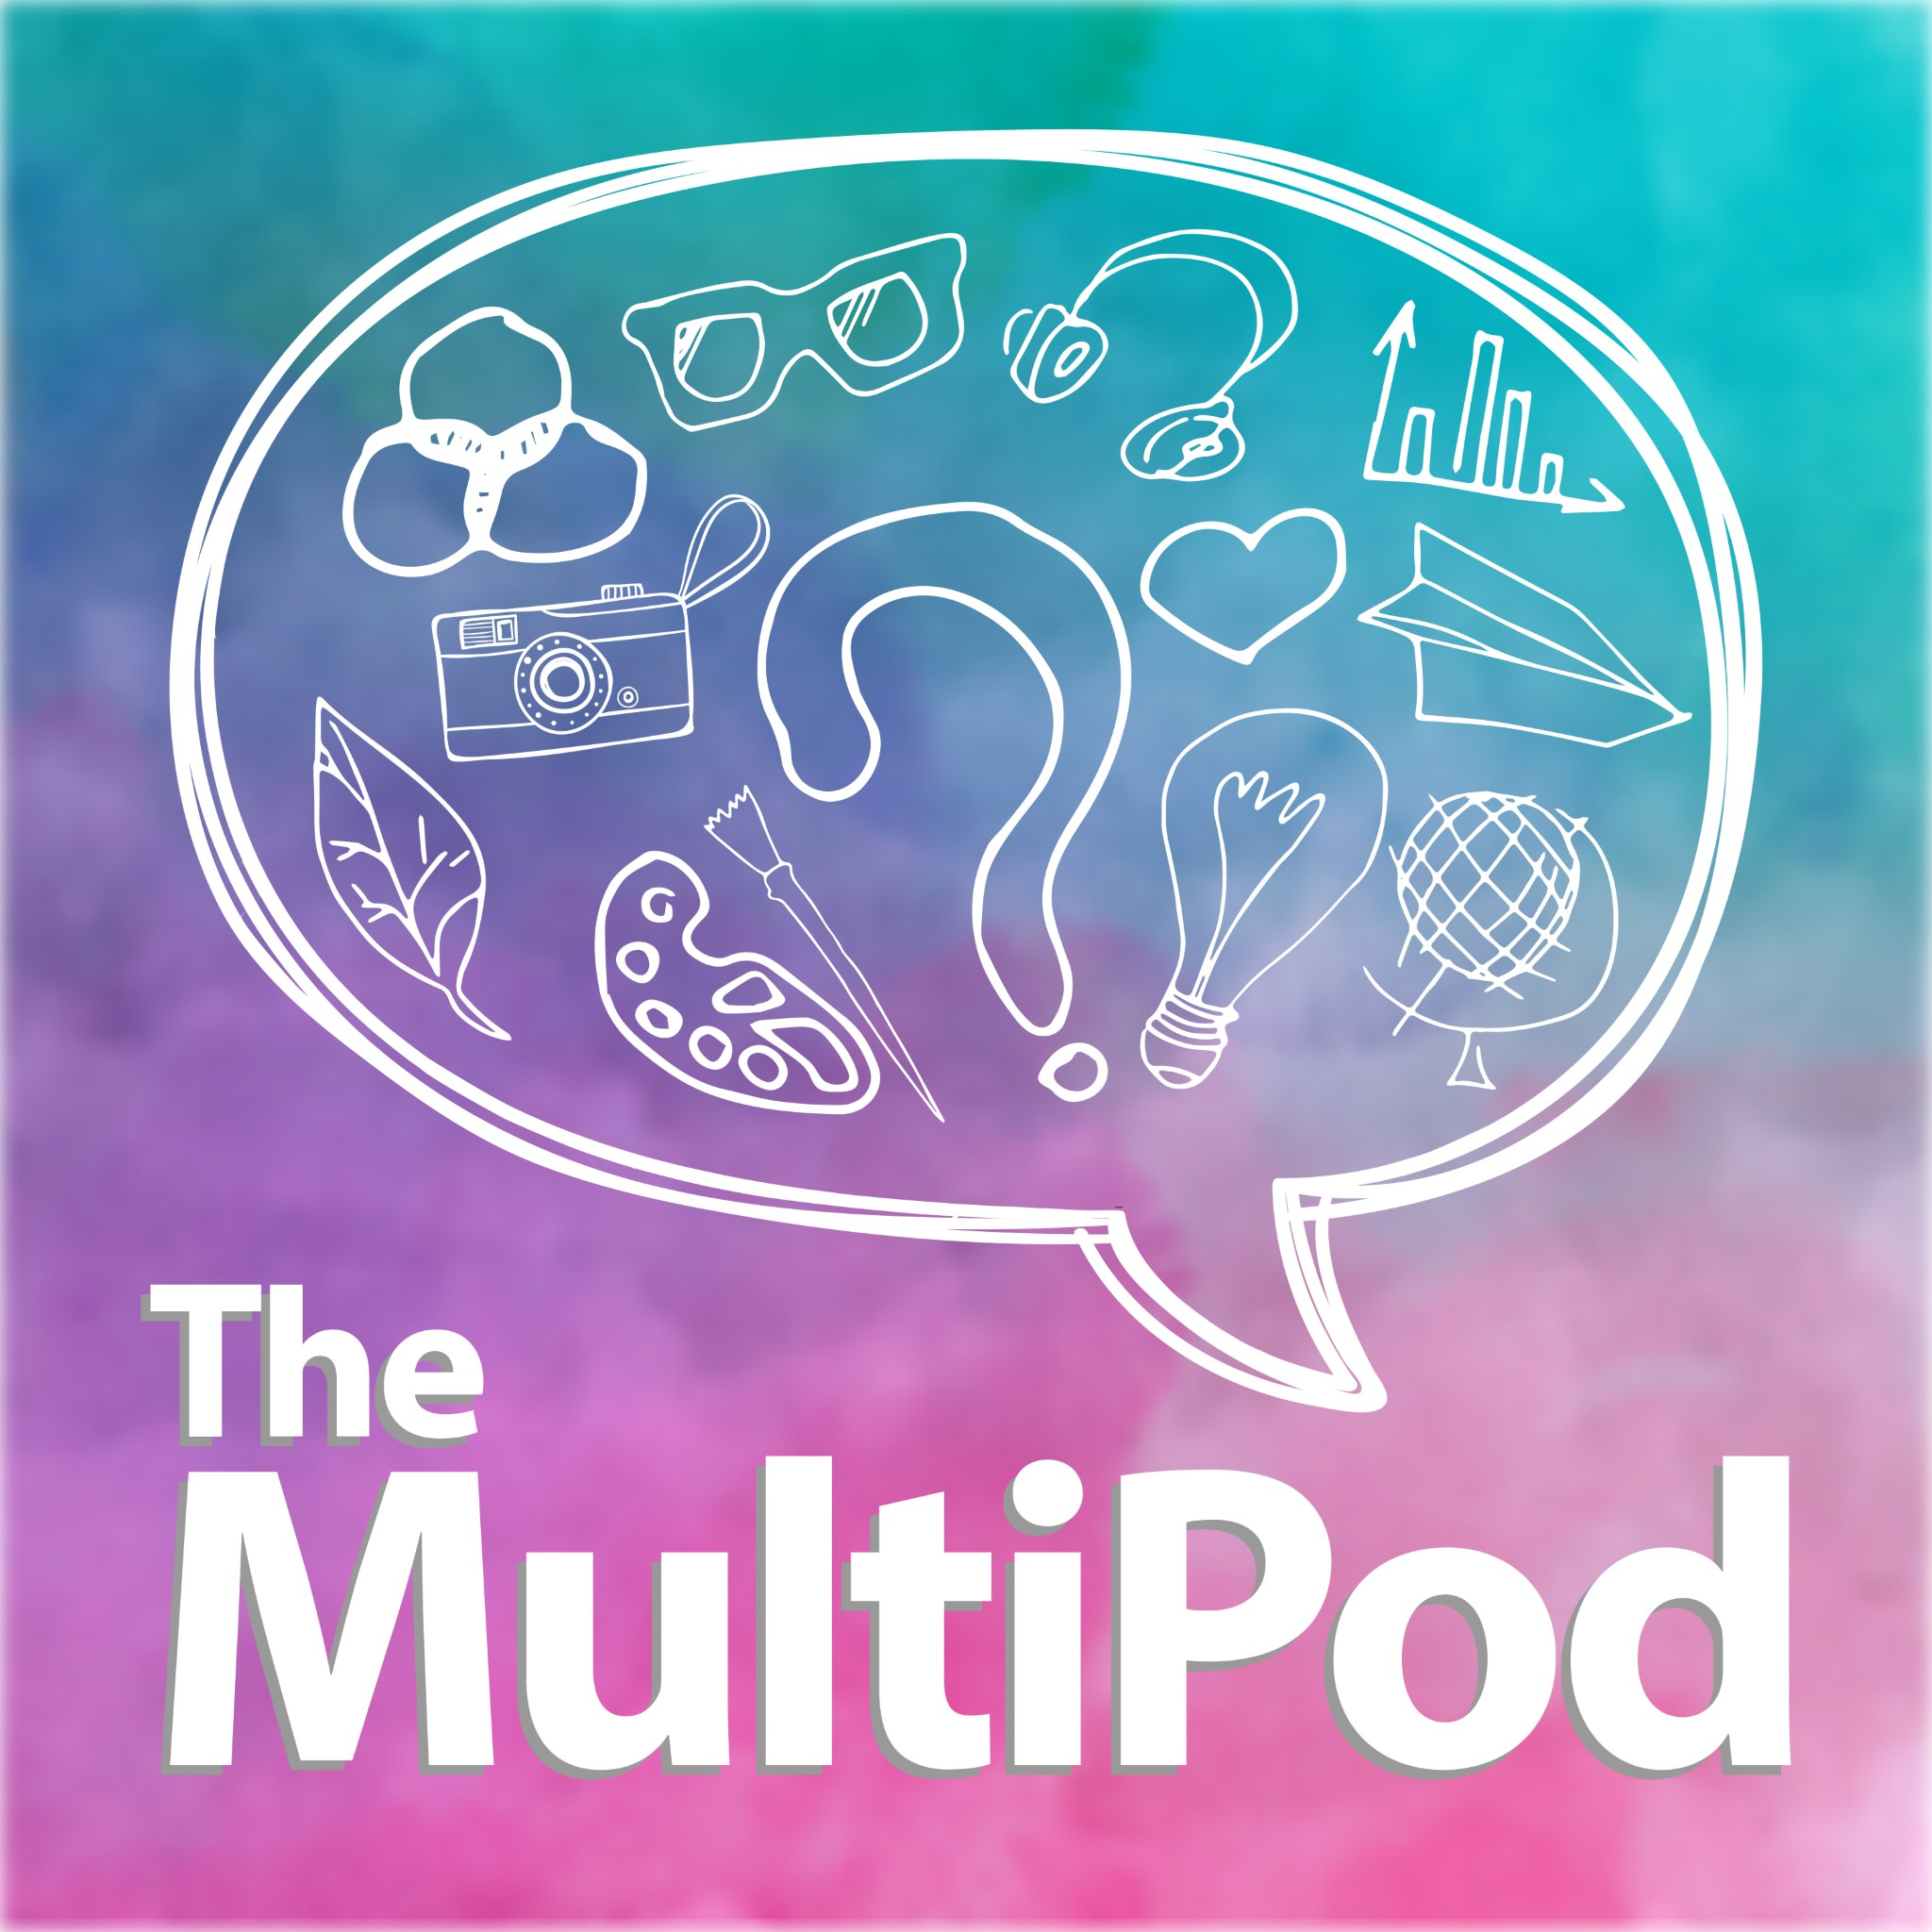 The MultiPod